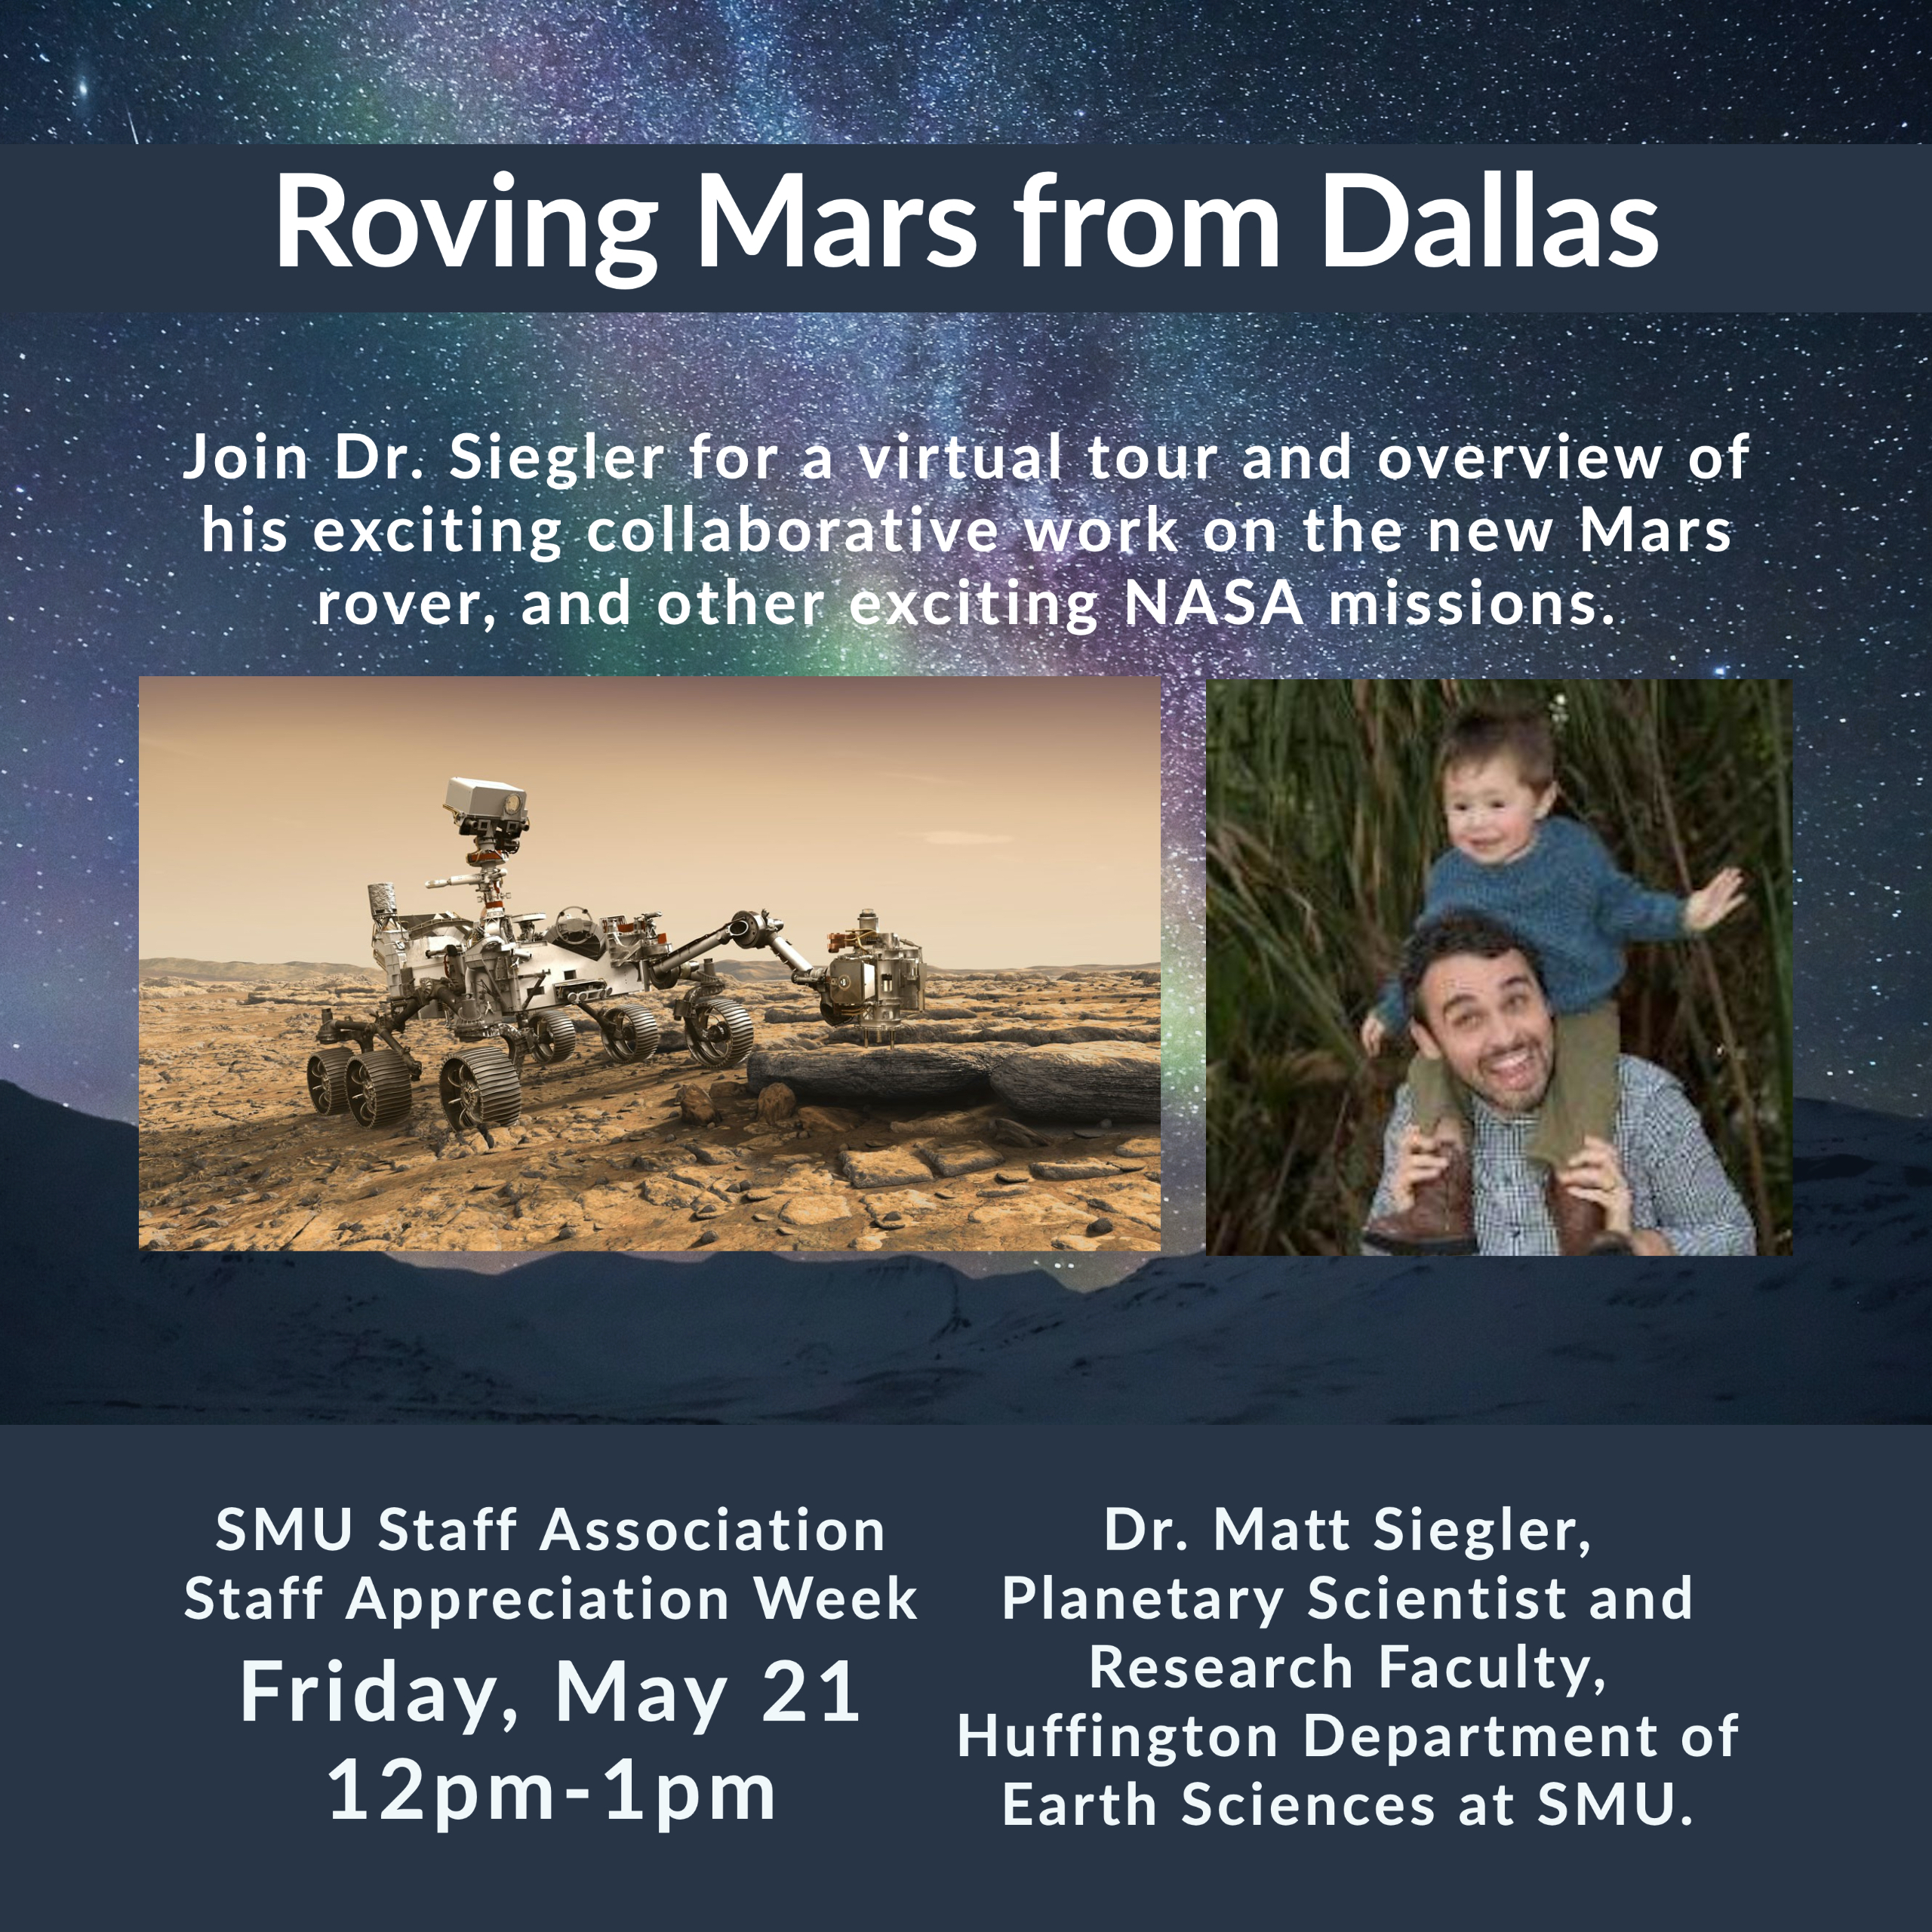 SMUSA Staff Appreciation Week: Roving Mars from Dallas